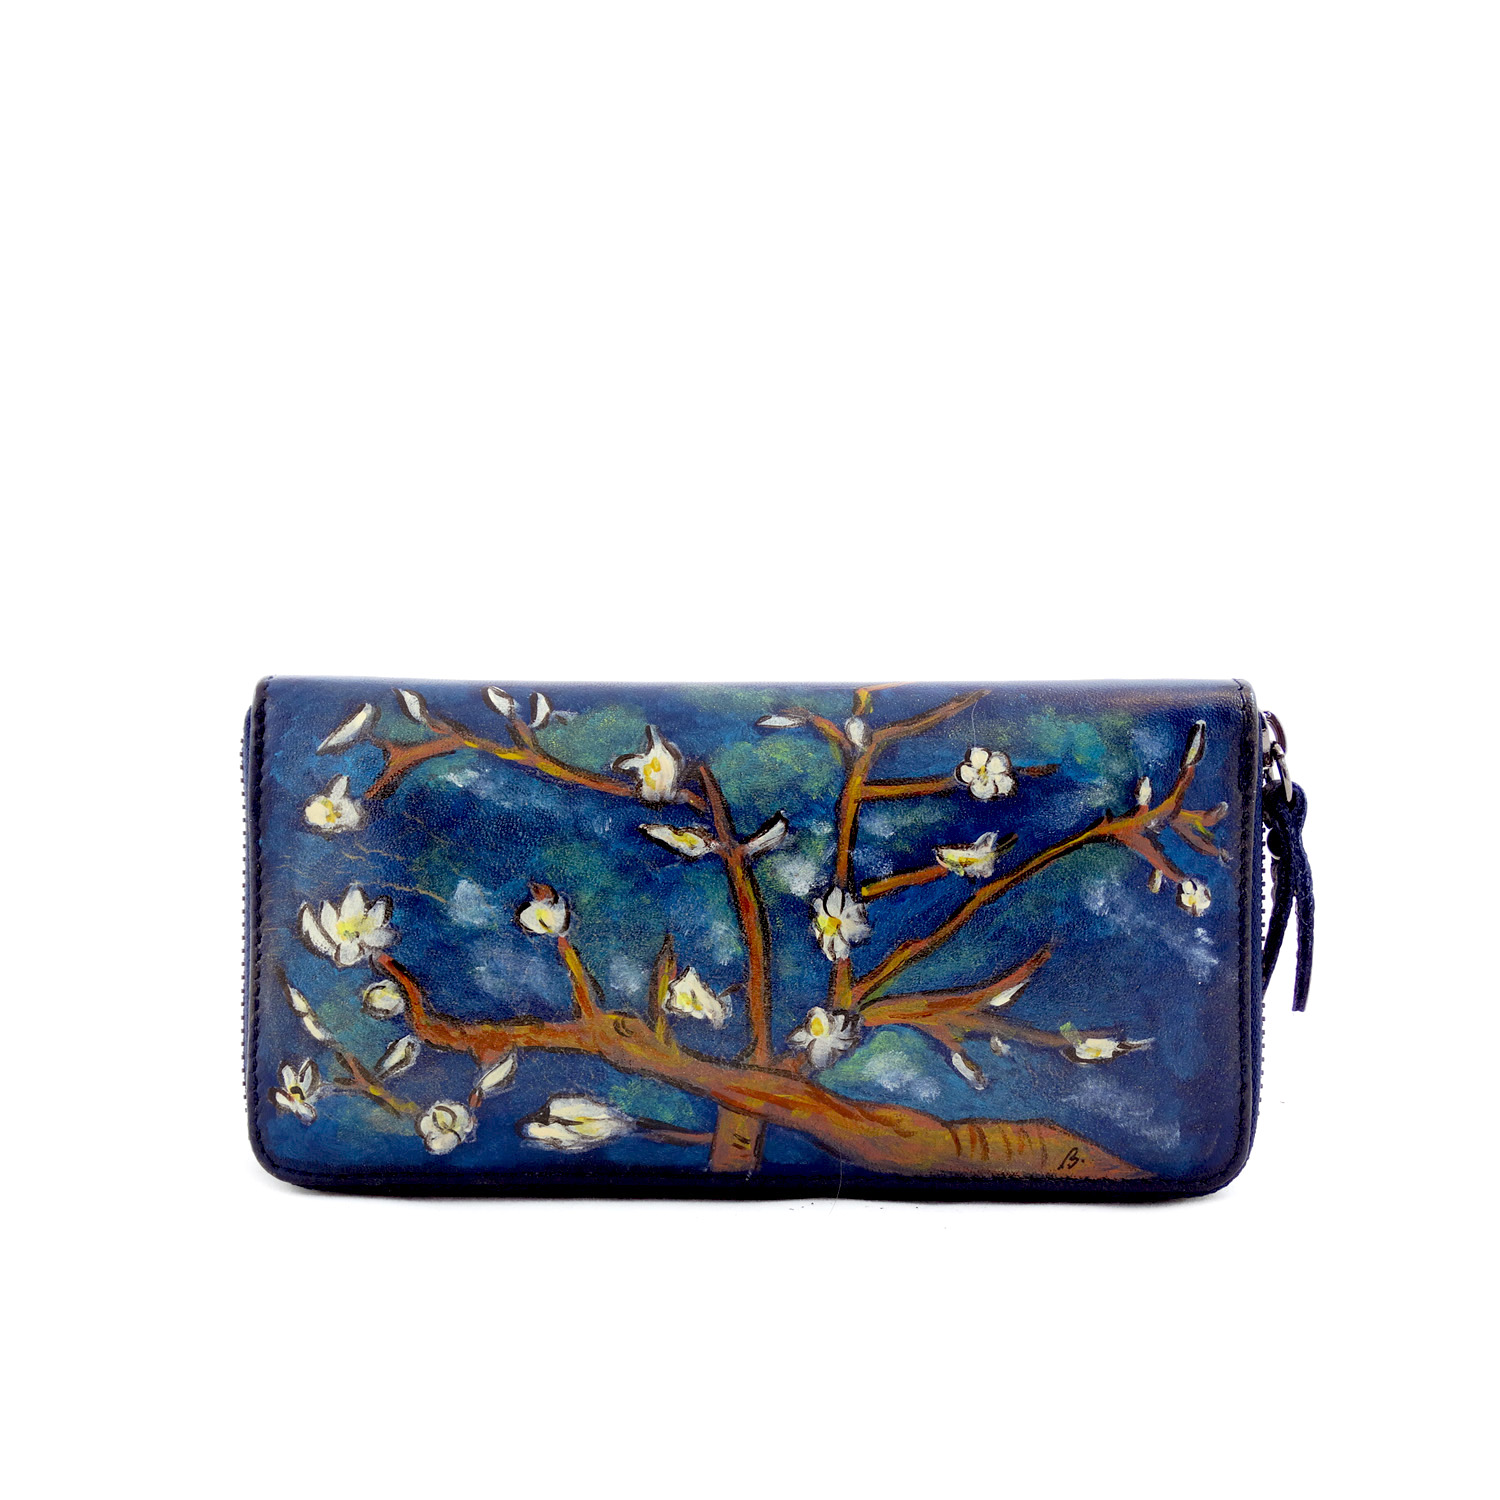 Hand painted wallet - The Almond by Van Gogh